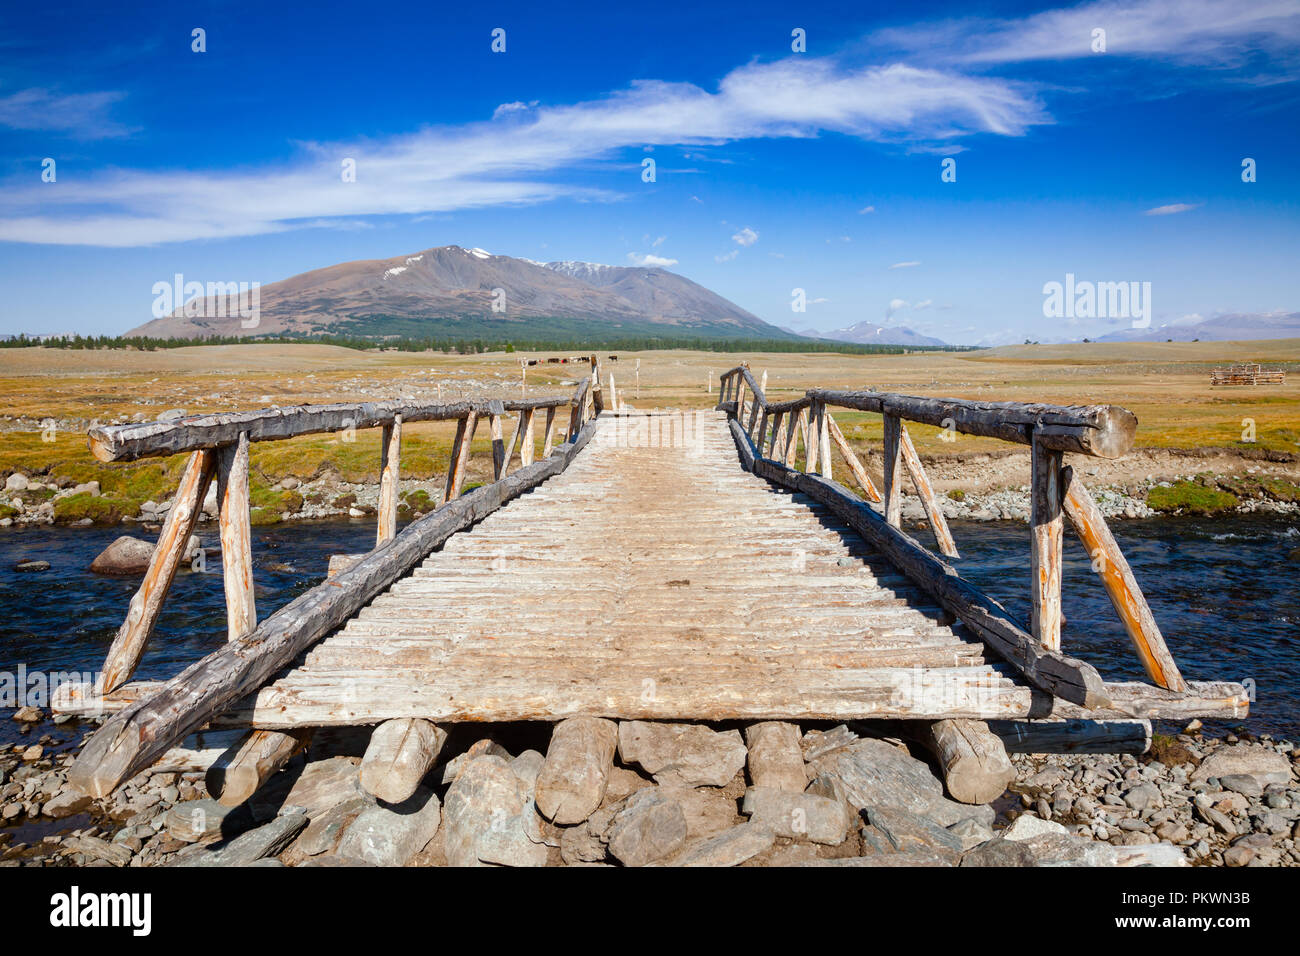 Wooden bridge over a river with distant mountain range in background, Altai Mountains, Western Mongolia - Stock Image